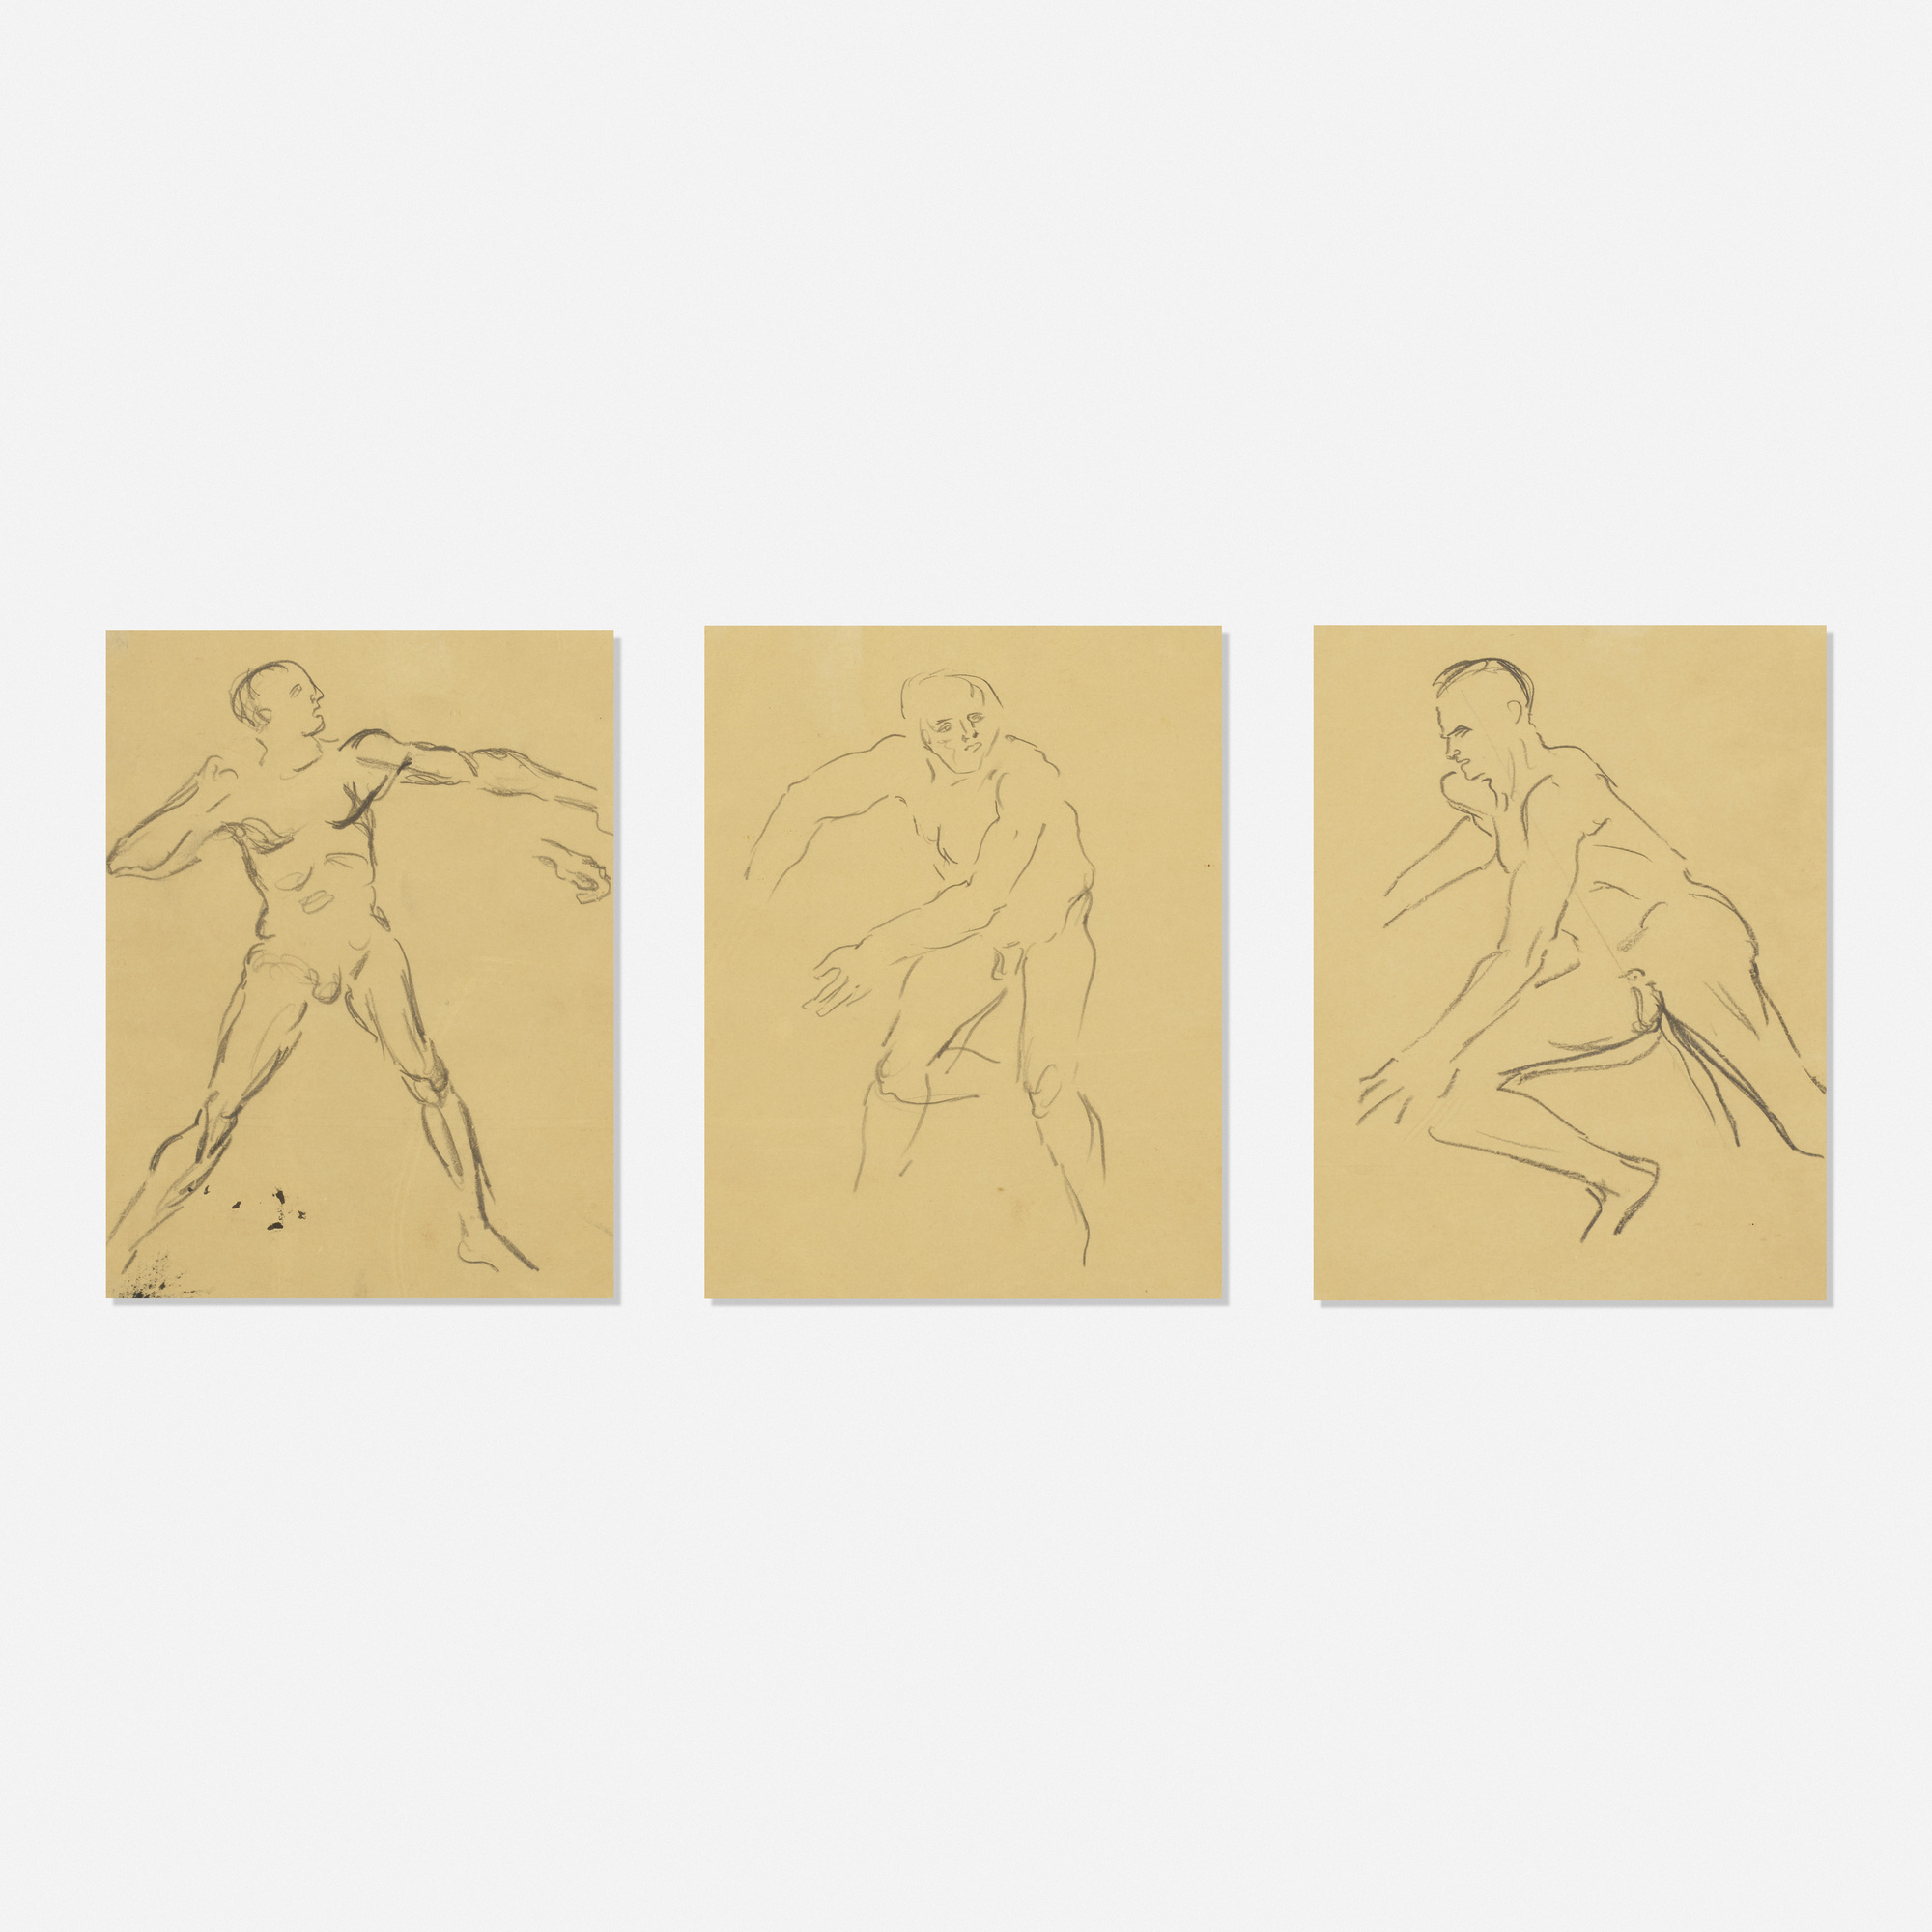 256: Leon Golub / Untitled (three works) (1 of 1)